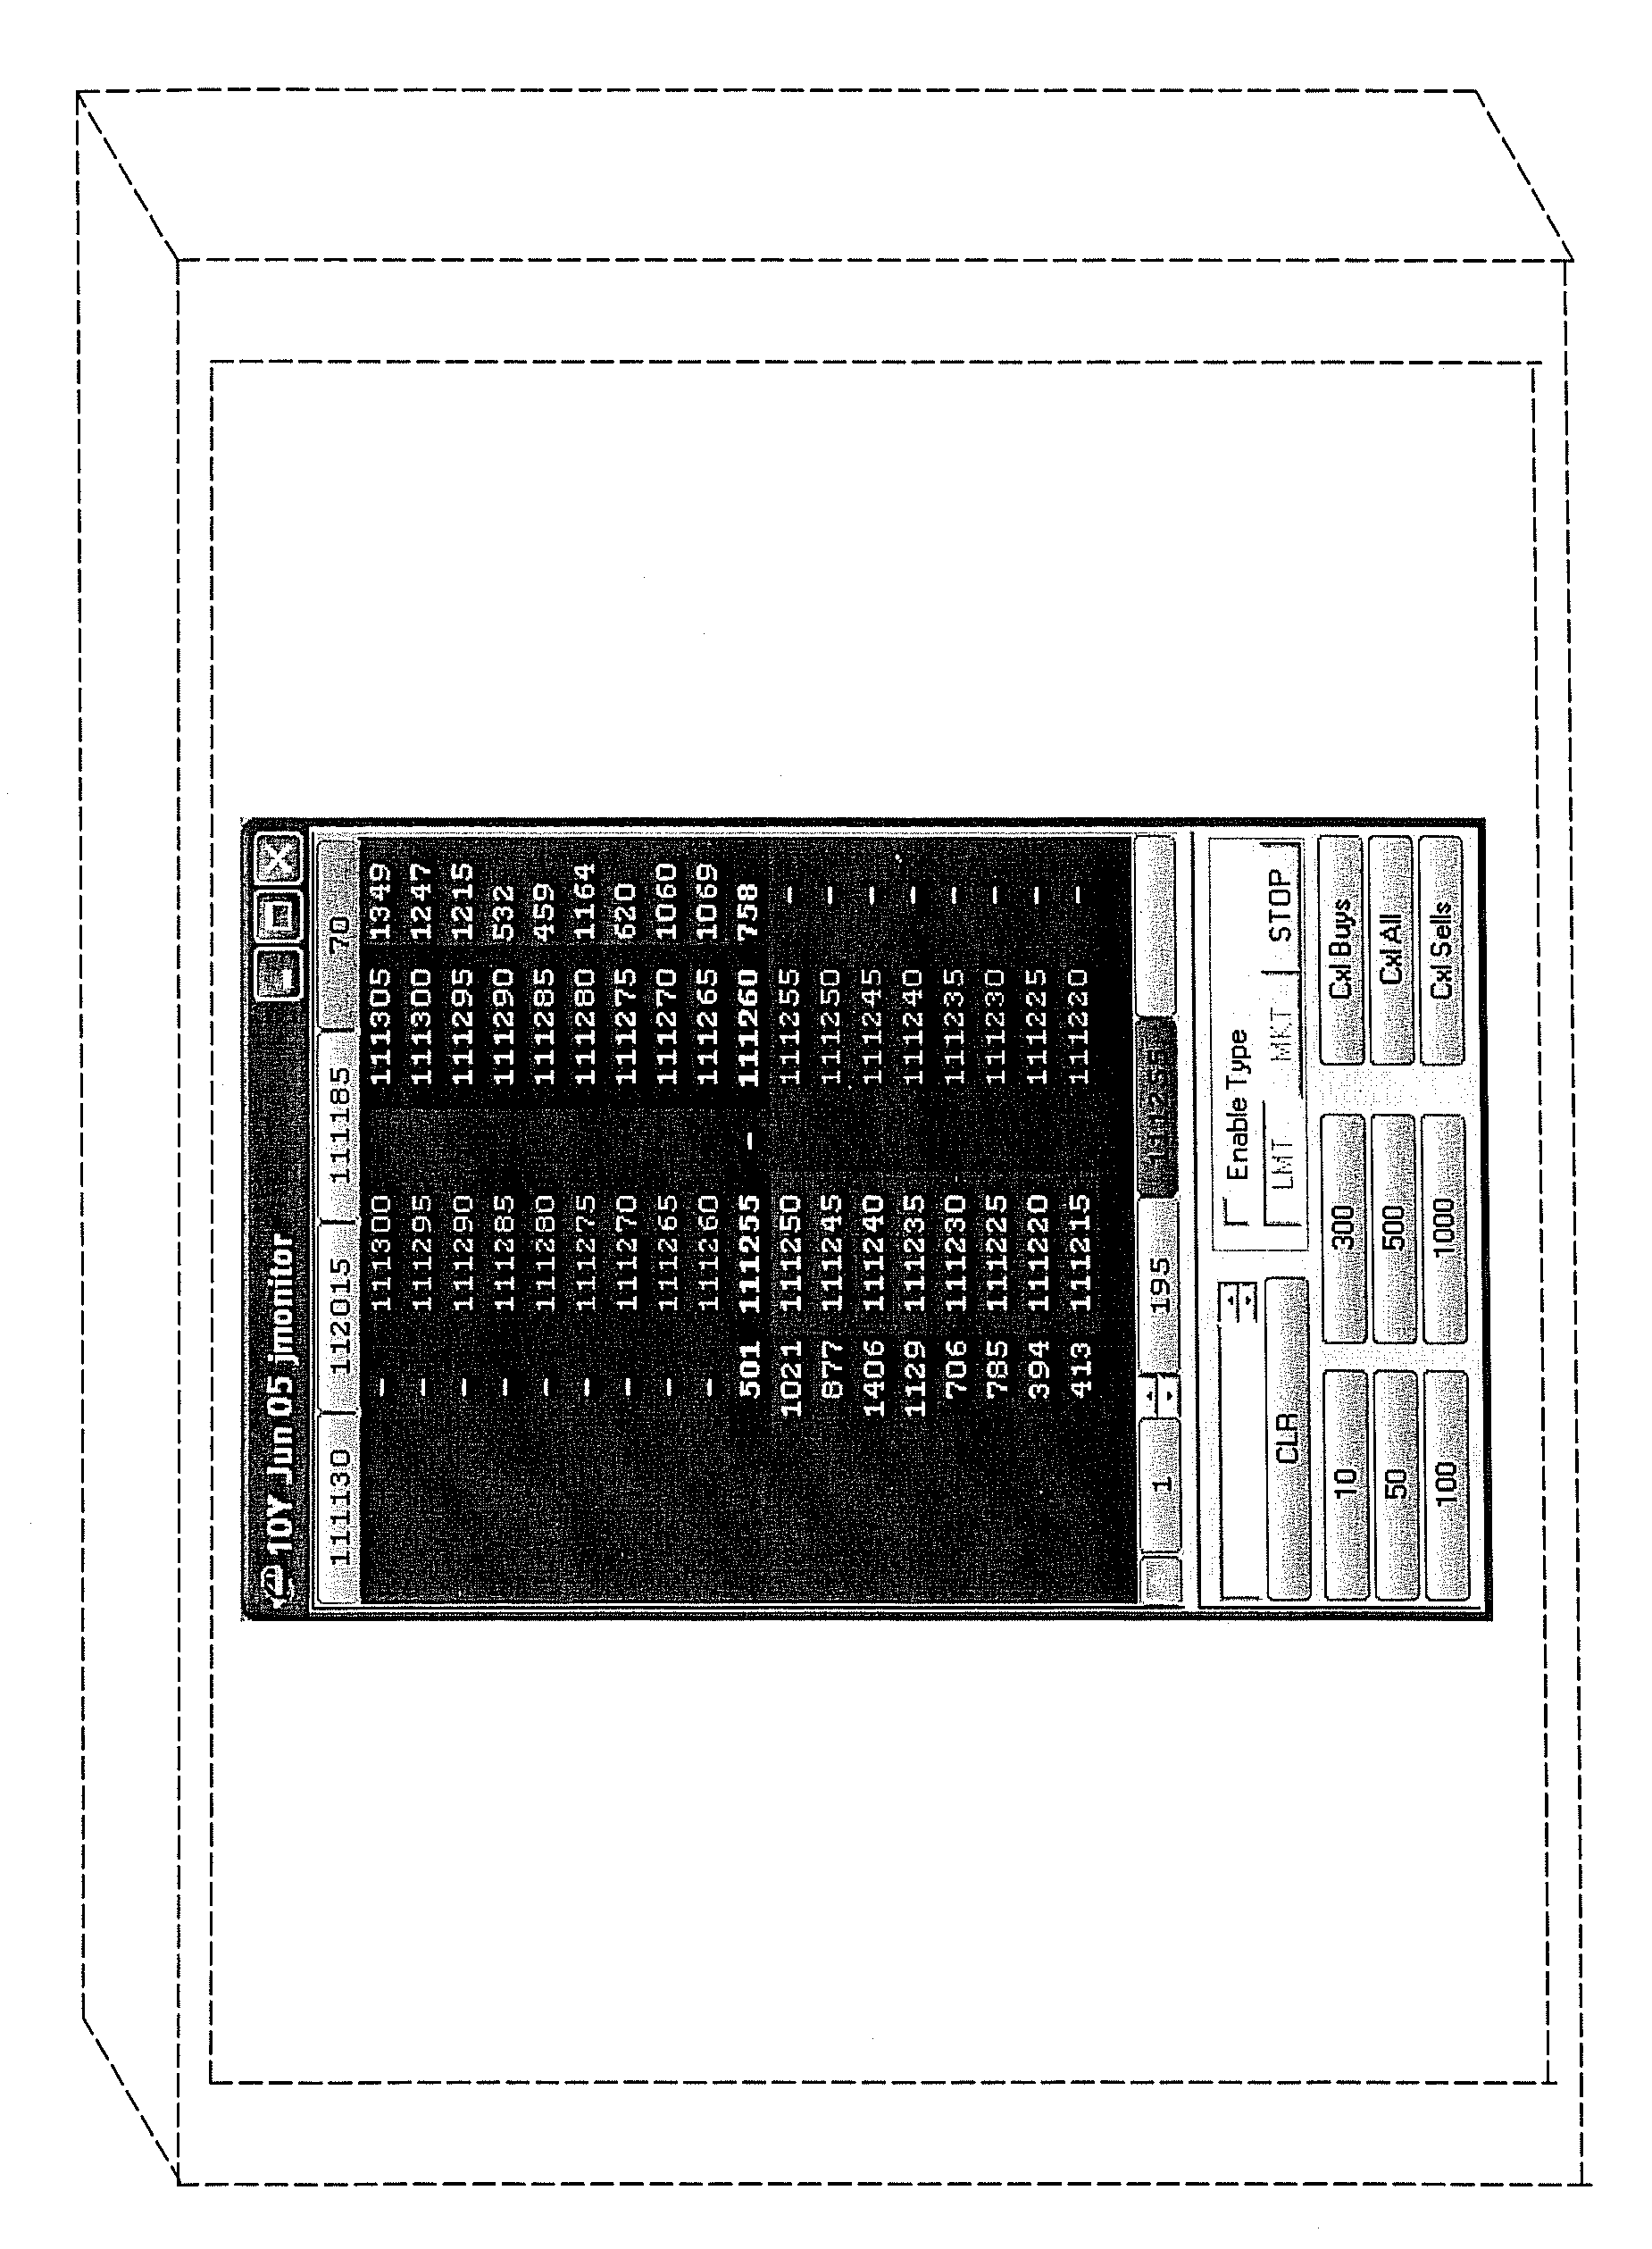 Trading system user interface